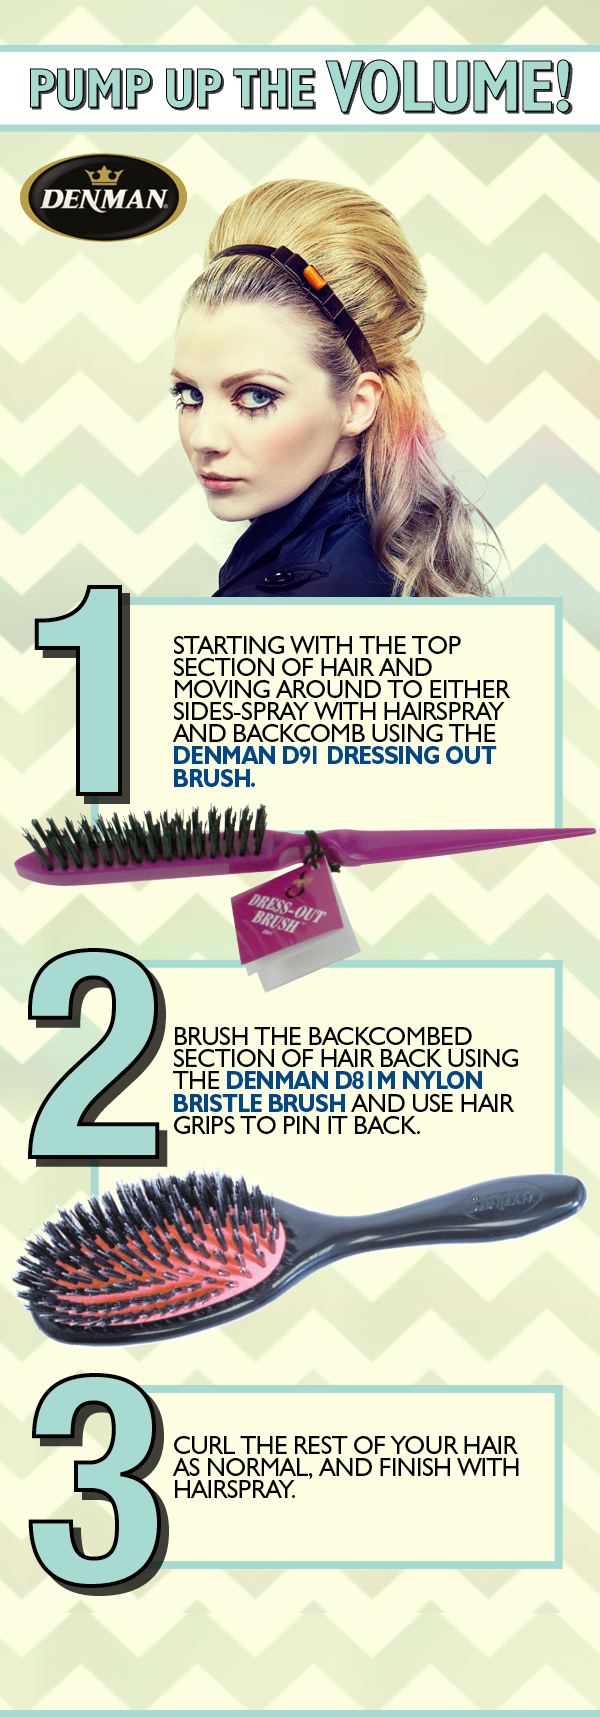 How to pump up a brush